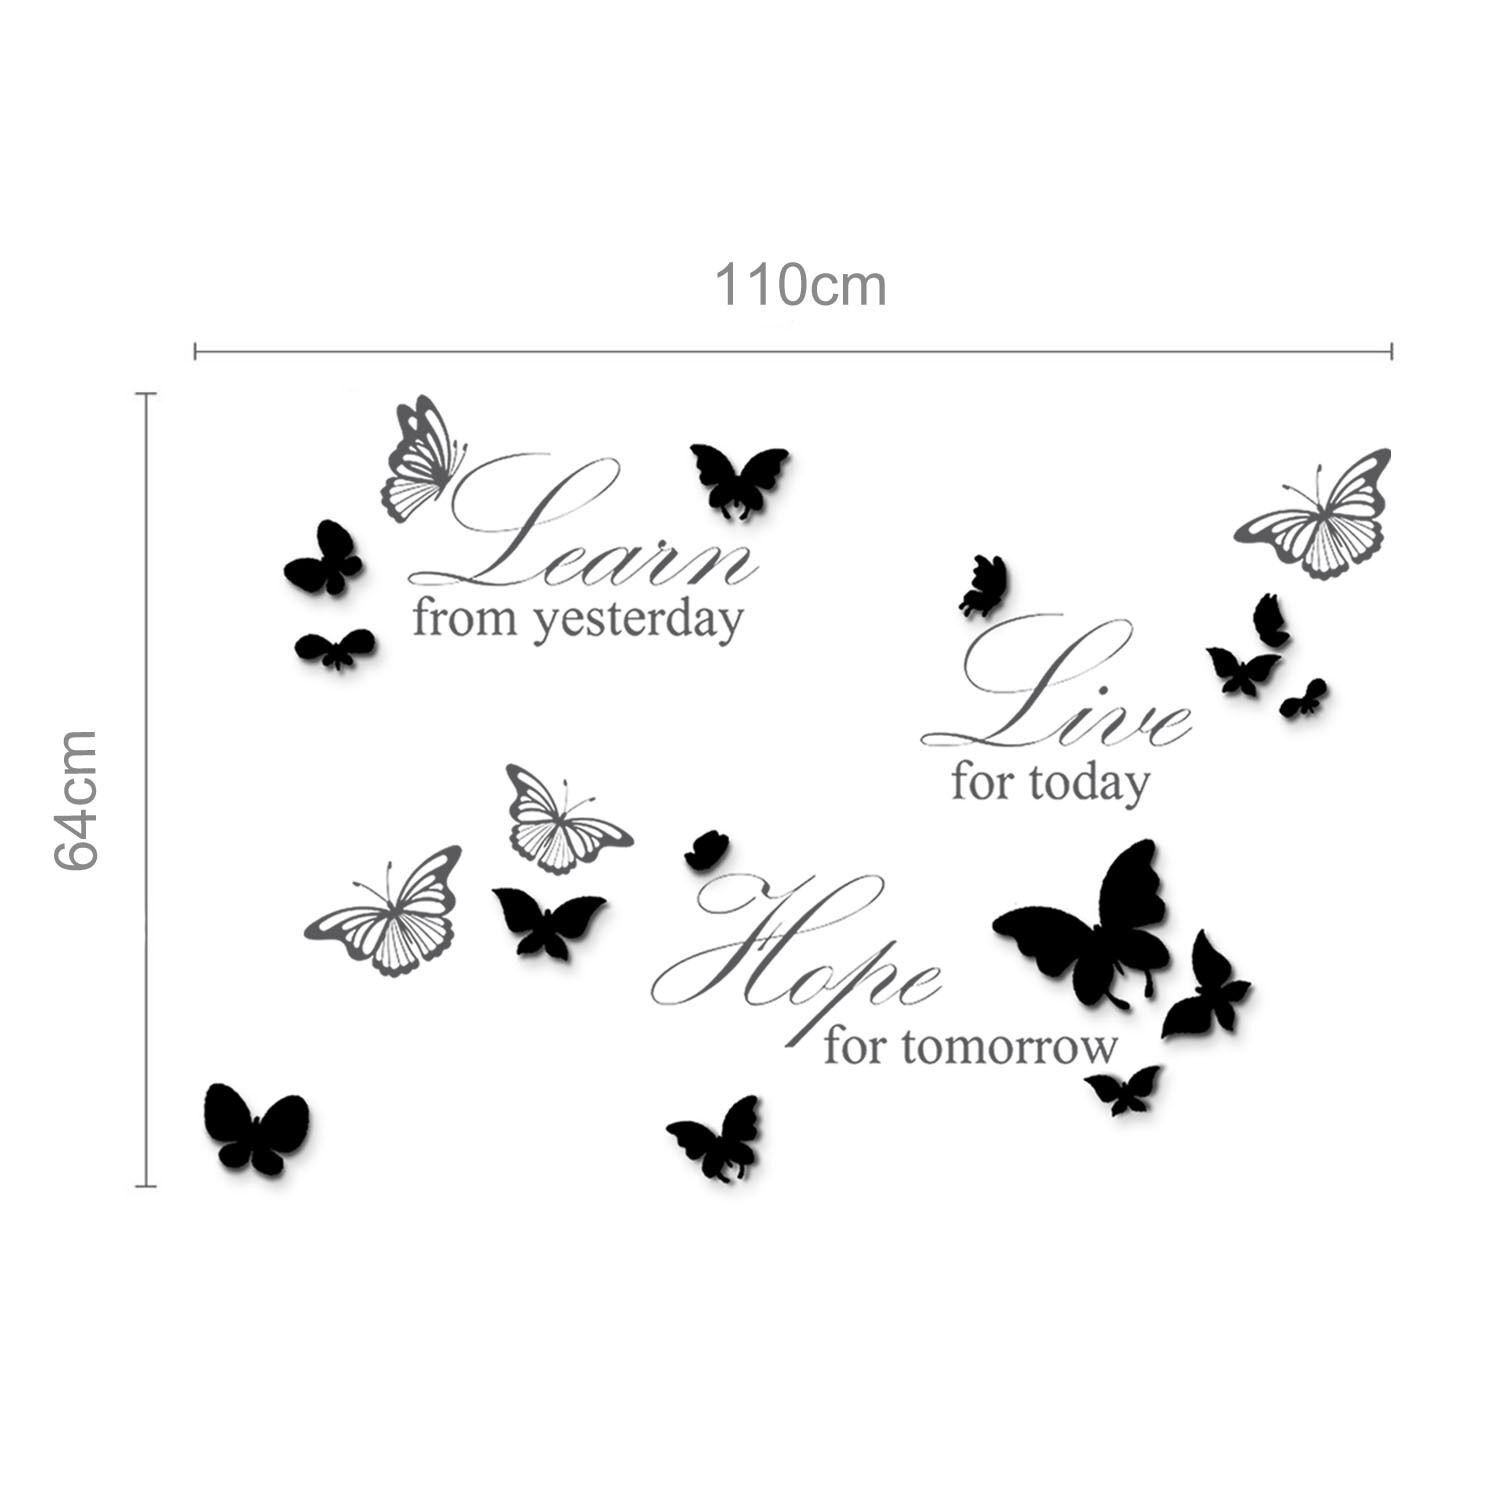 14 Mirror Butterflies Wall Art + Live Learn Hope Wall Stickers, Kitchen, Bathroom, Living room, Self-adhesive, Decal, Butterflies Decoration